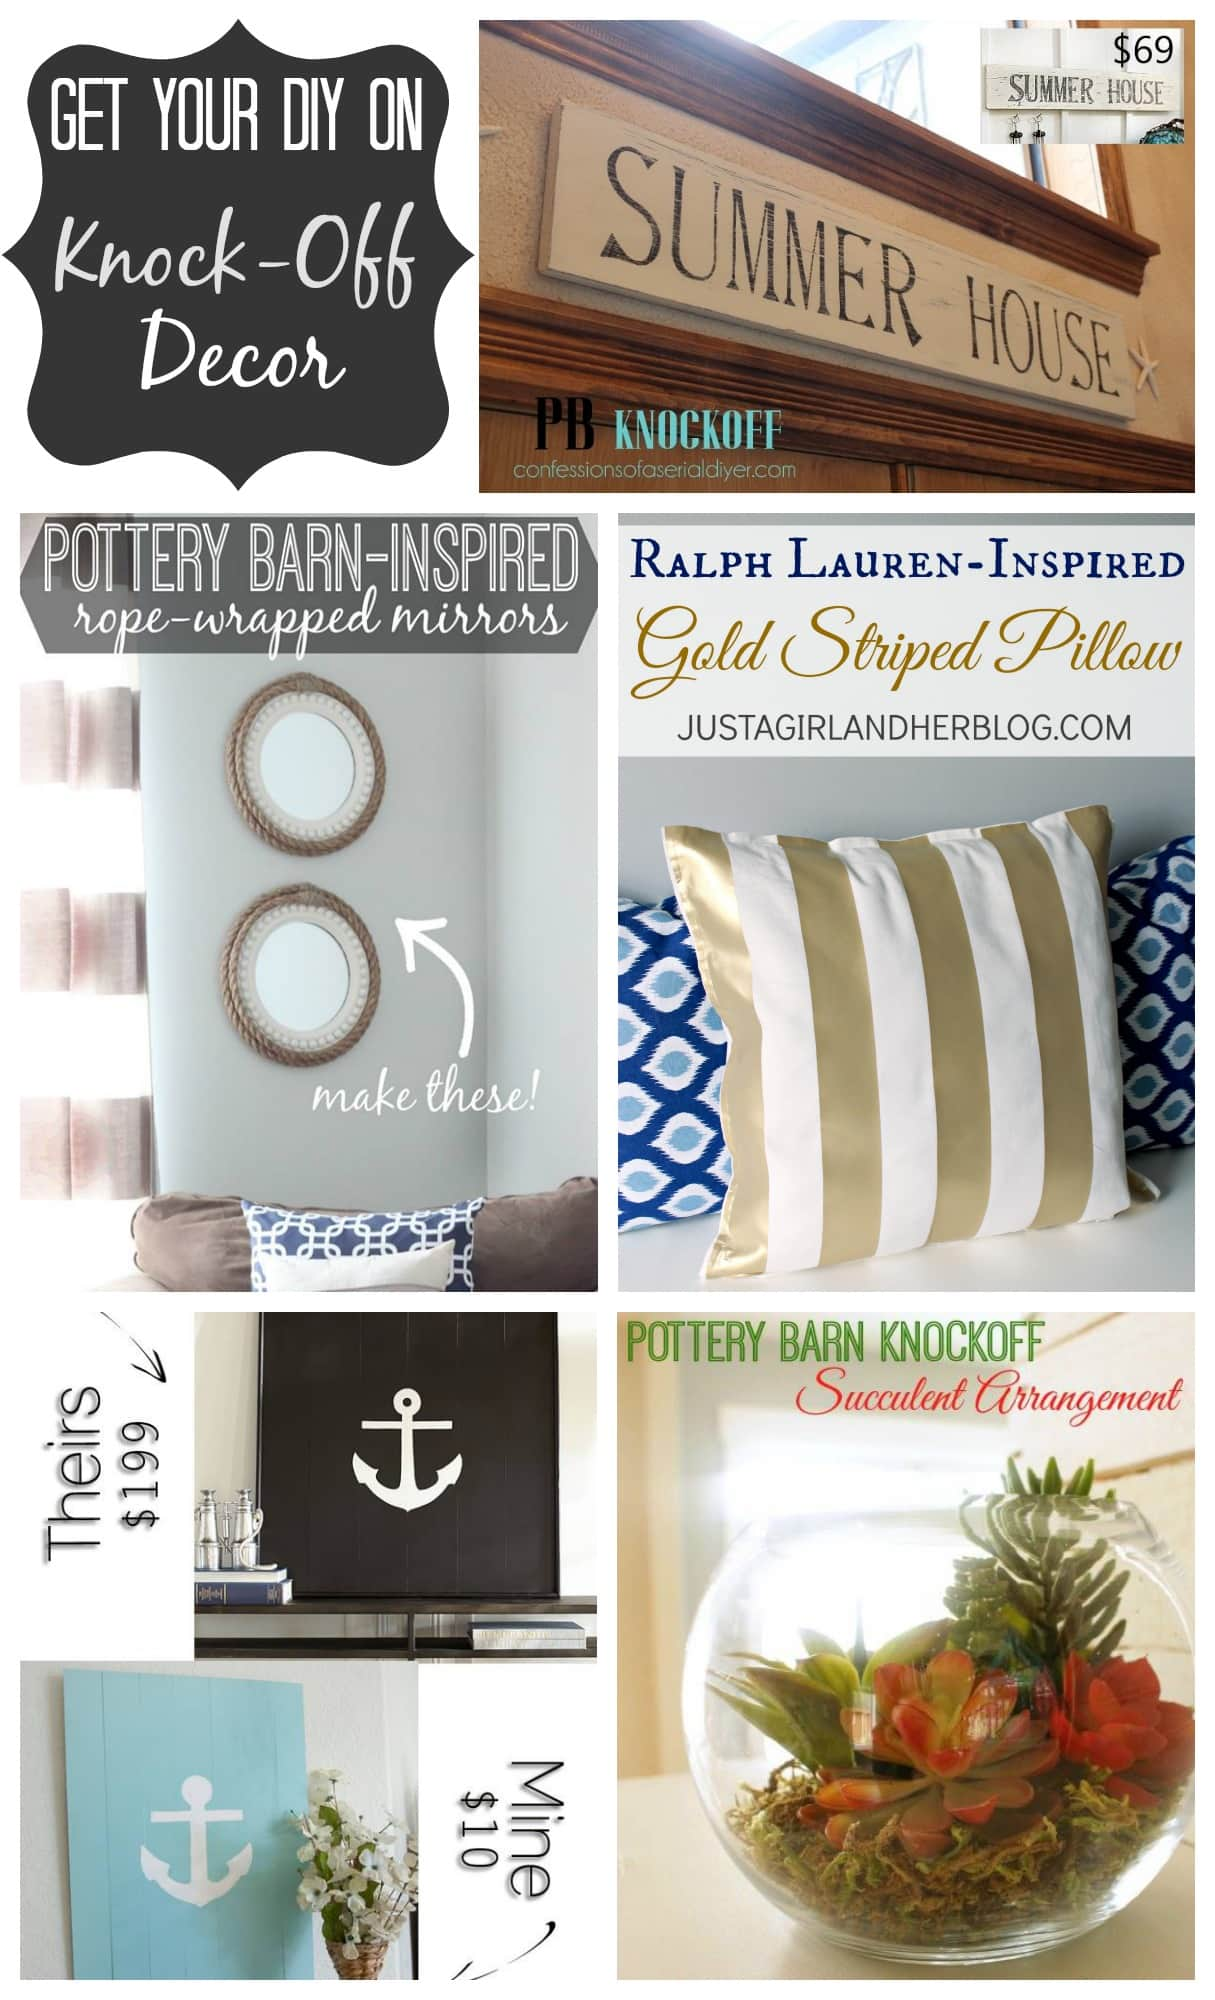 Knock Off Perfume: Ralph Lauren-Inspired Gold Striped Pillow